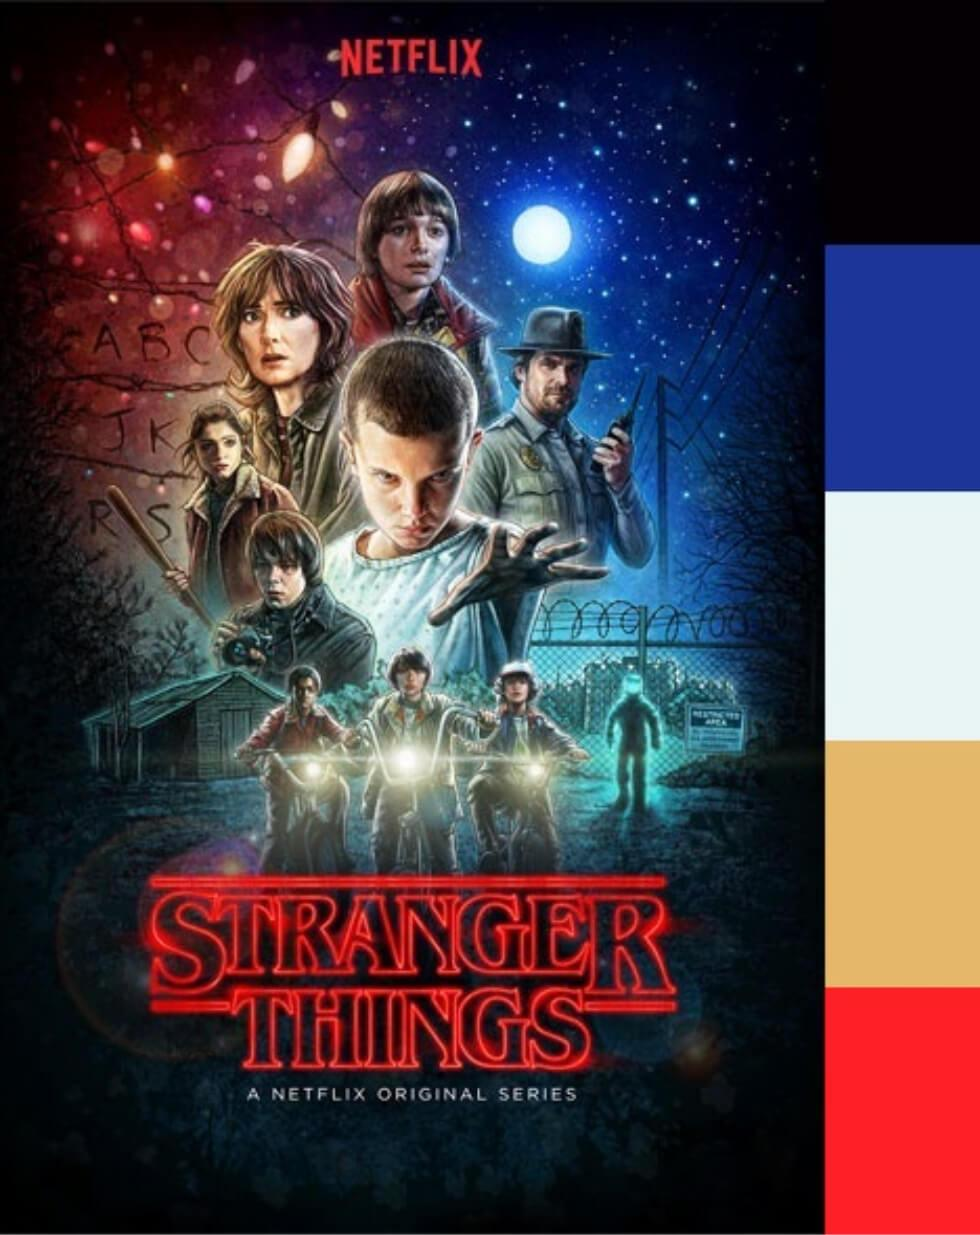 Stranger Things movie poster and colour palette